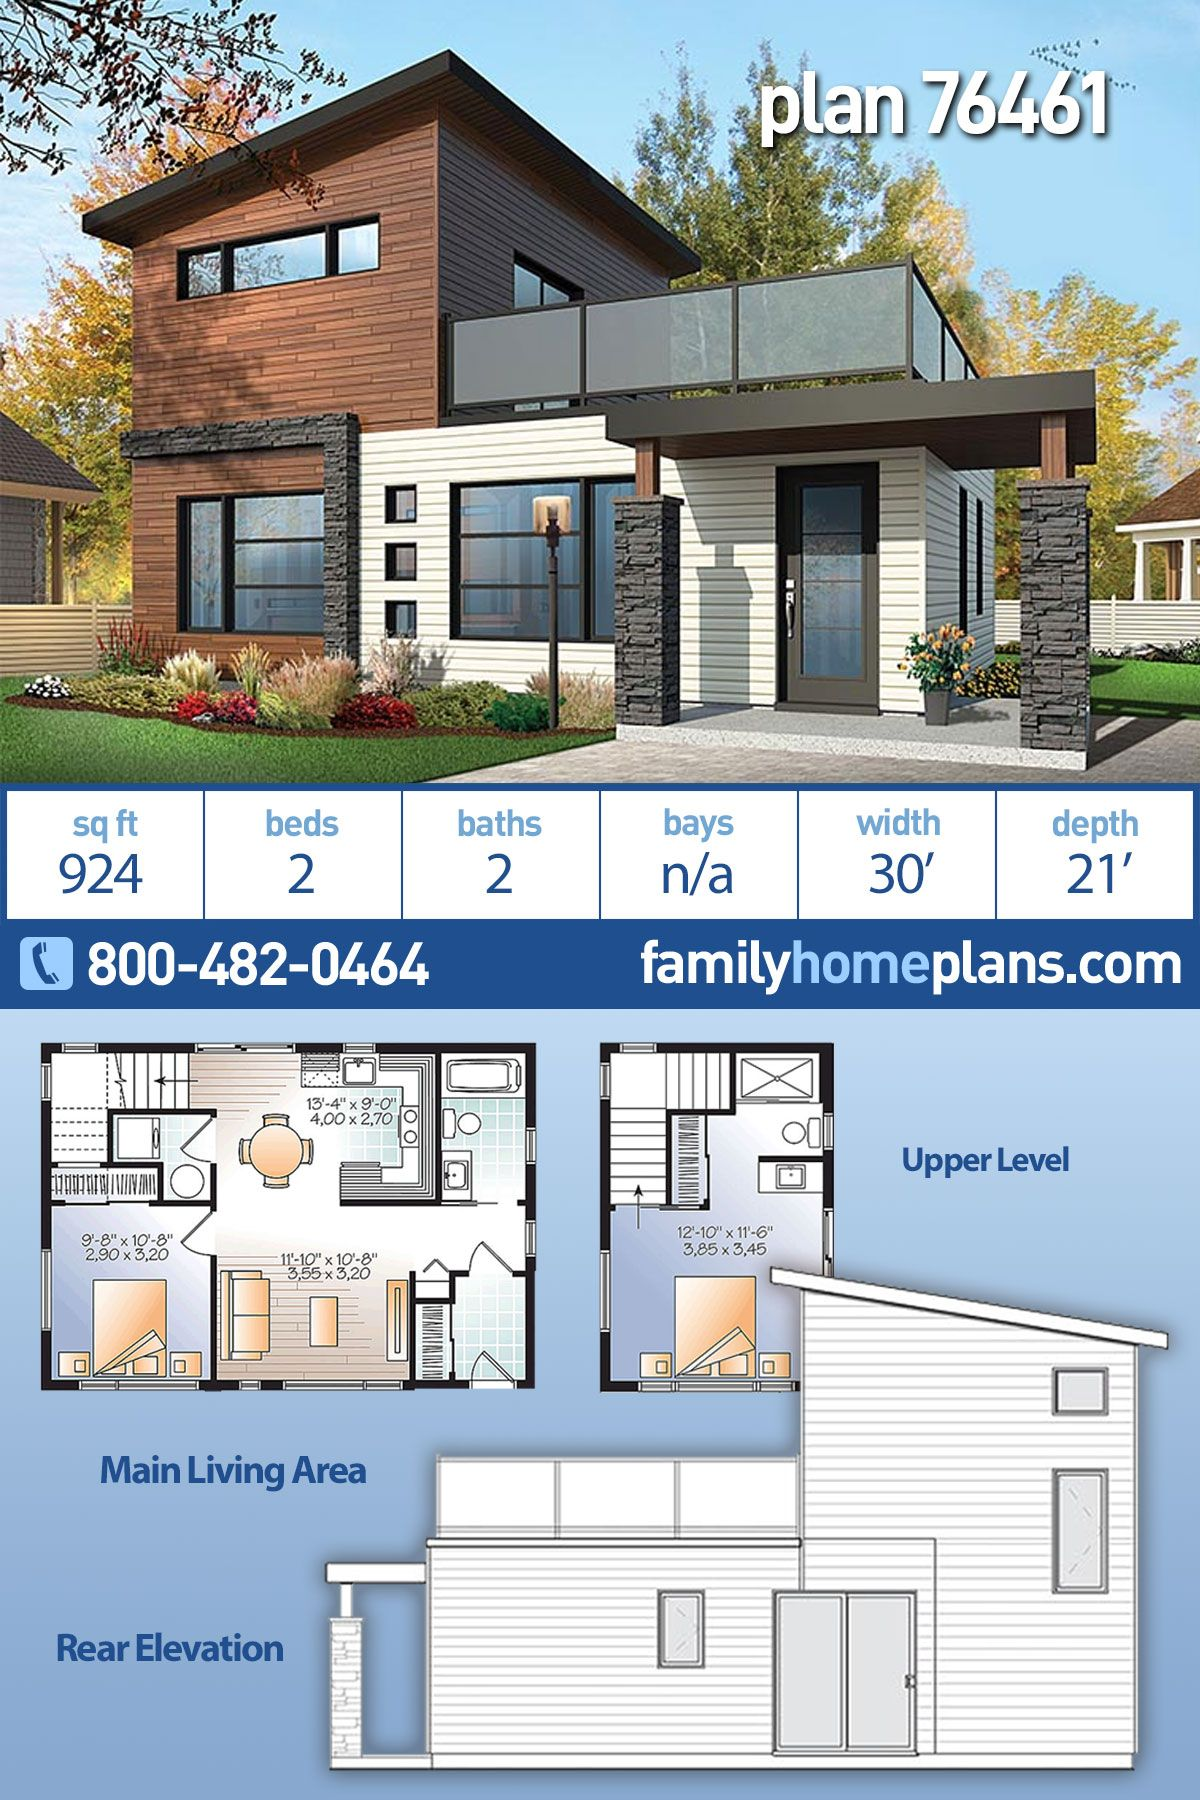 Modern Style House Plan 76461 With 2 Bed 2 Bath Beautiful House Plans Modern Style House Plans Modern House Floor Plans